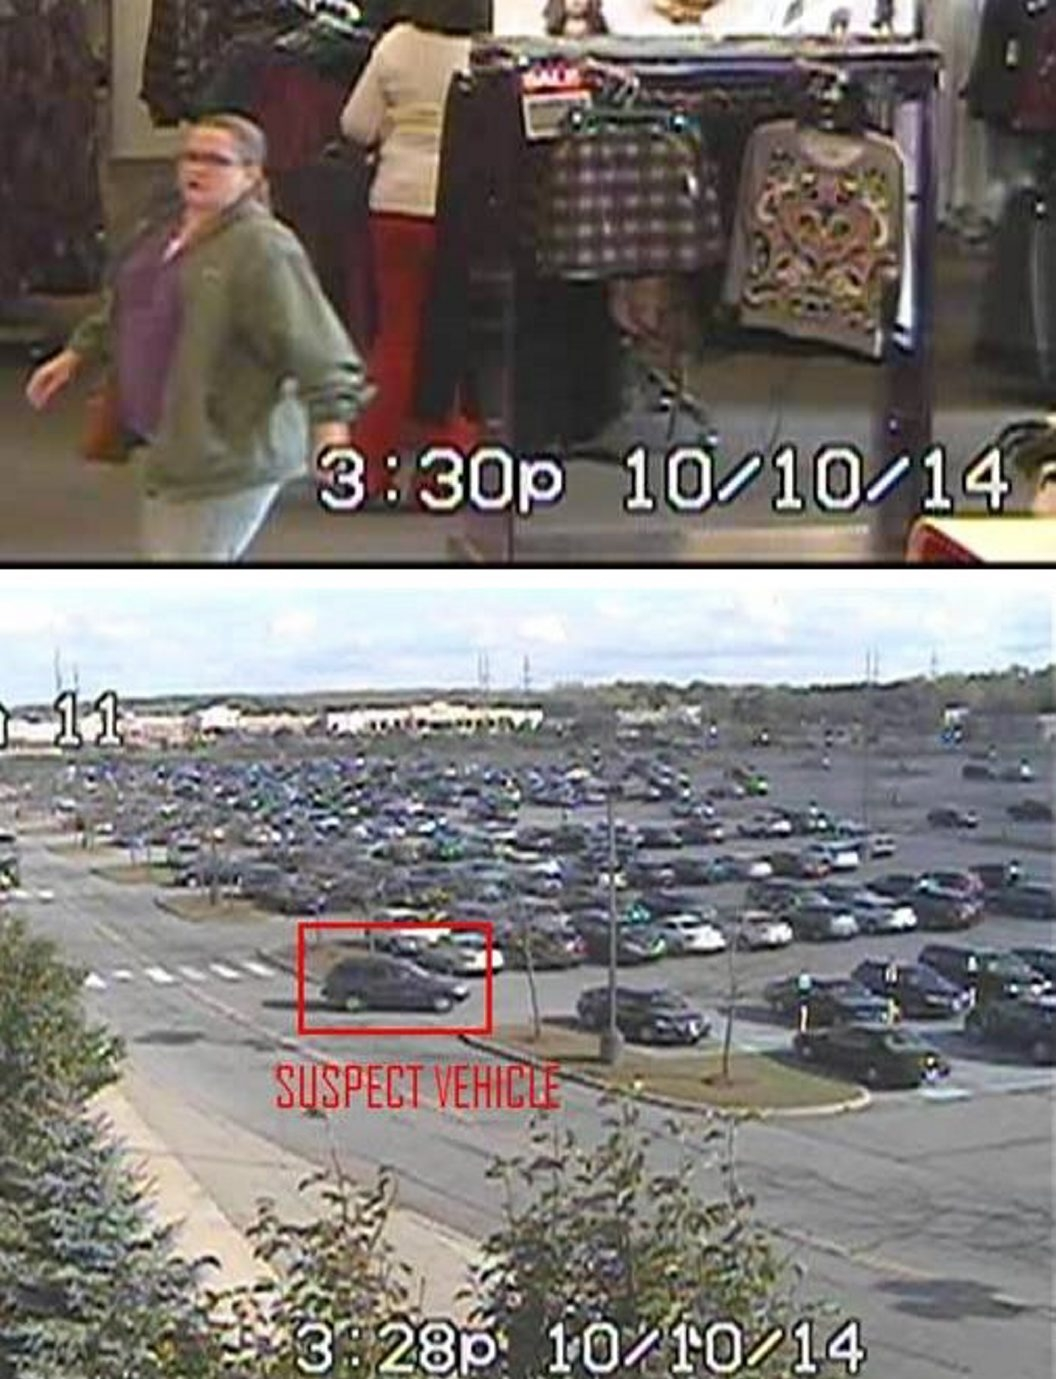 Photos released by Orchard Park police may show suspect, vehicle involved in Oct. 10  'keying' of vehicle in parking space dispute at Quaker Crossing Plaza.